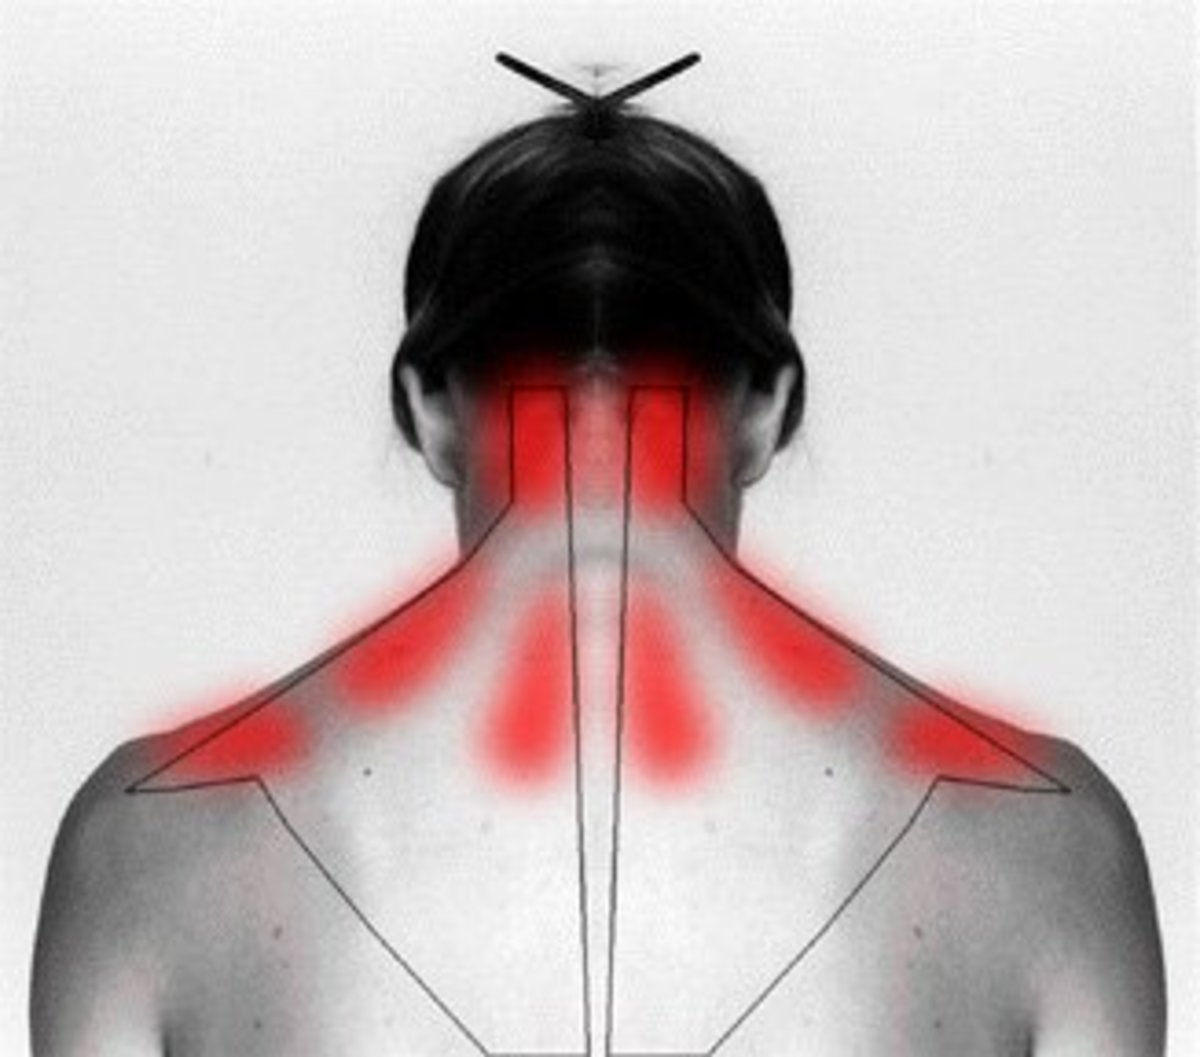 How to Treat and Cure Your Stiff Neck or Shoulder to Ease the Pain in 12 Easy Steps